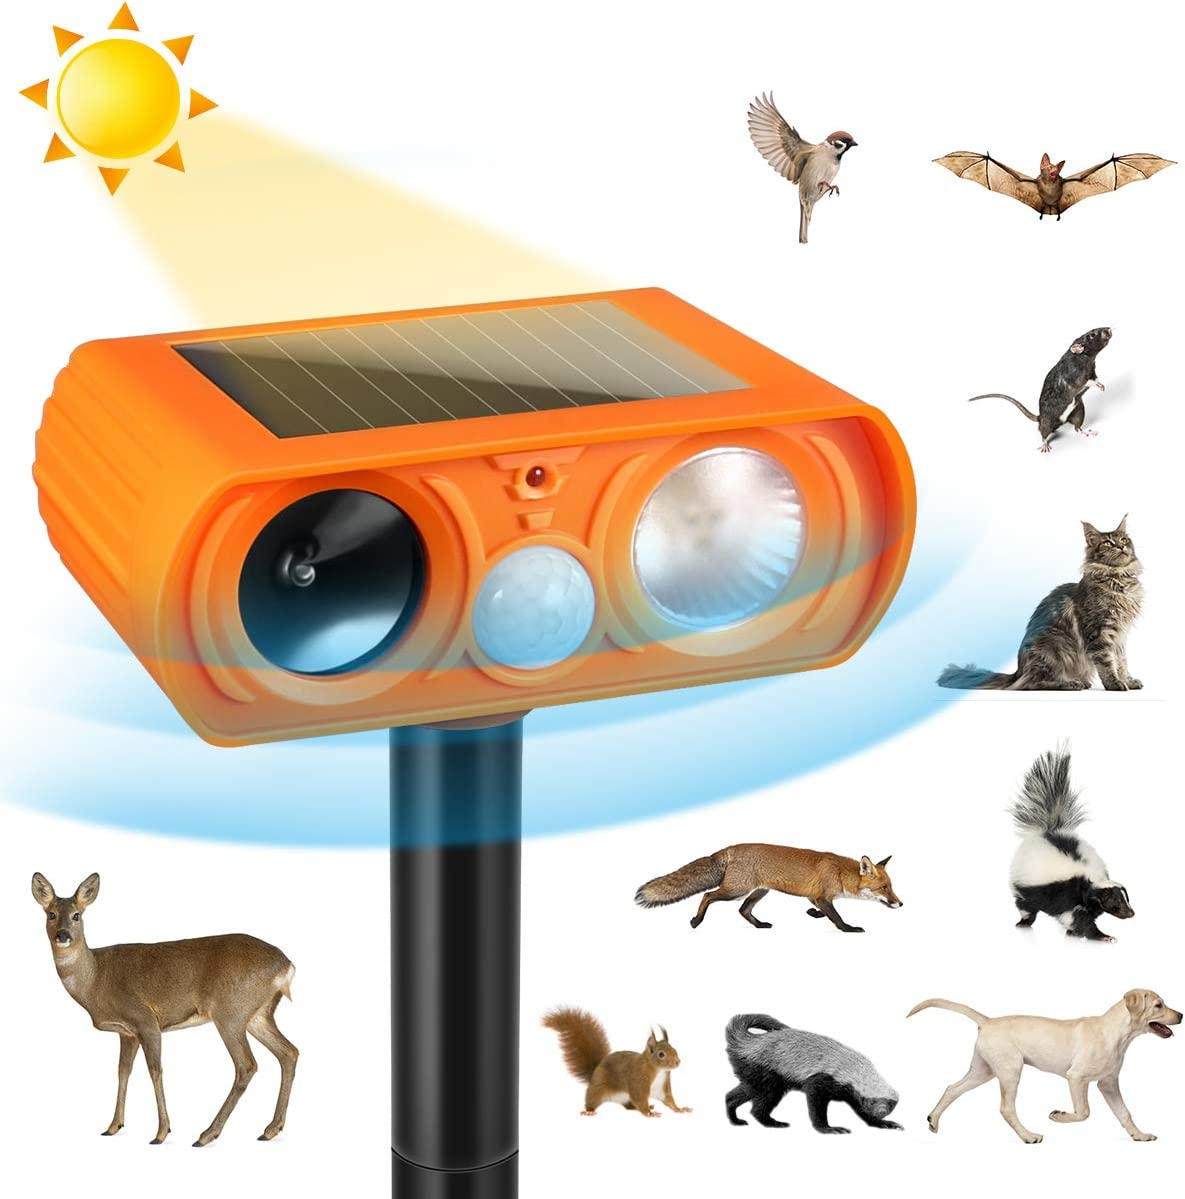 Luckkya Ultrasonic Dog Repellent,2020 Orange Ultrasonic Animal Repellent with Motion Sensor and Flashing Lights Outdoor Solar Powered Waterproof Farm Garden Yard Repellent,Dogs, Cats, Birds, Foxes